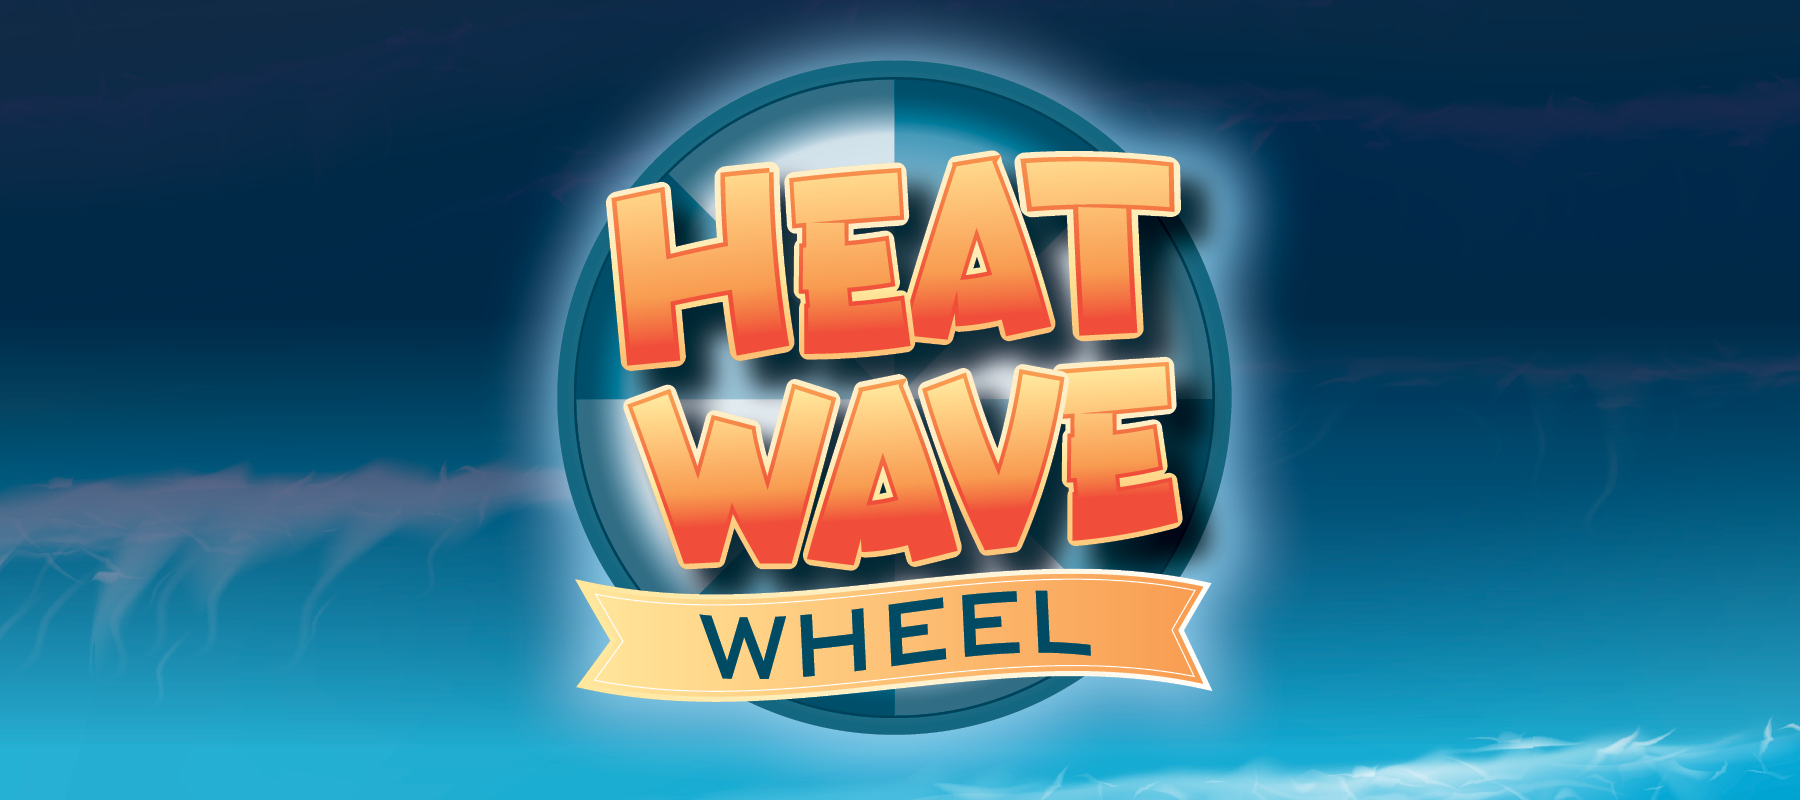 Heat Wave Wheel